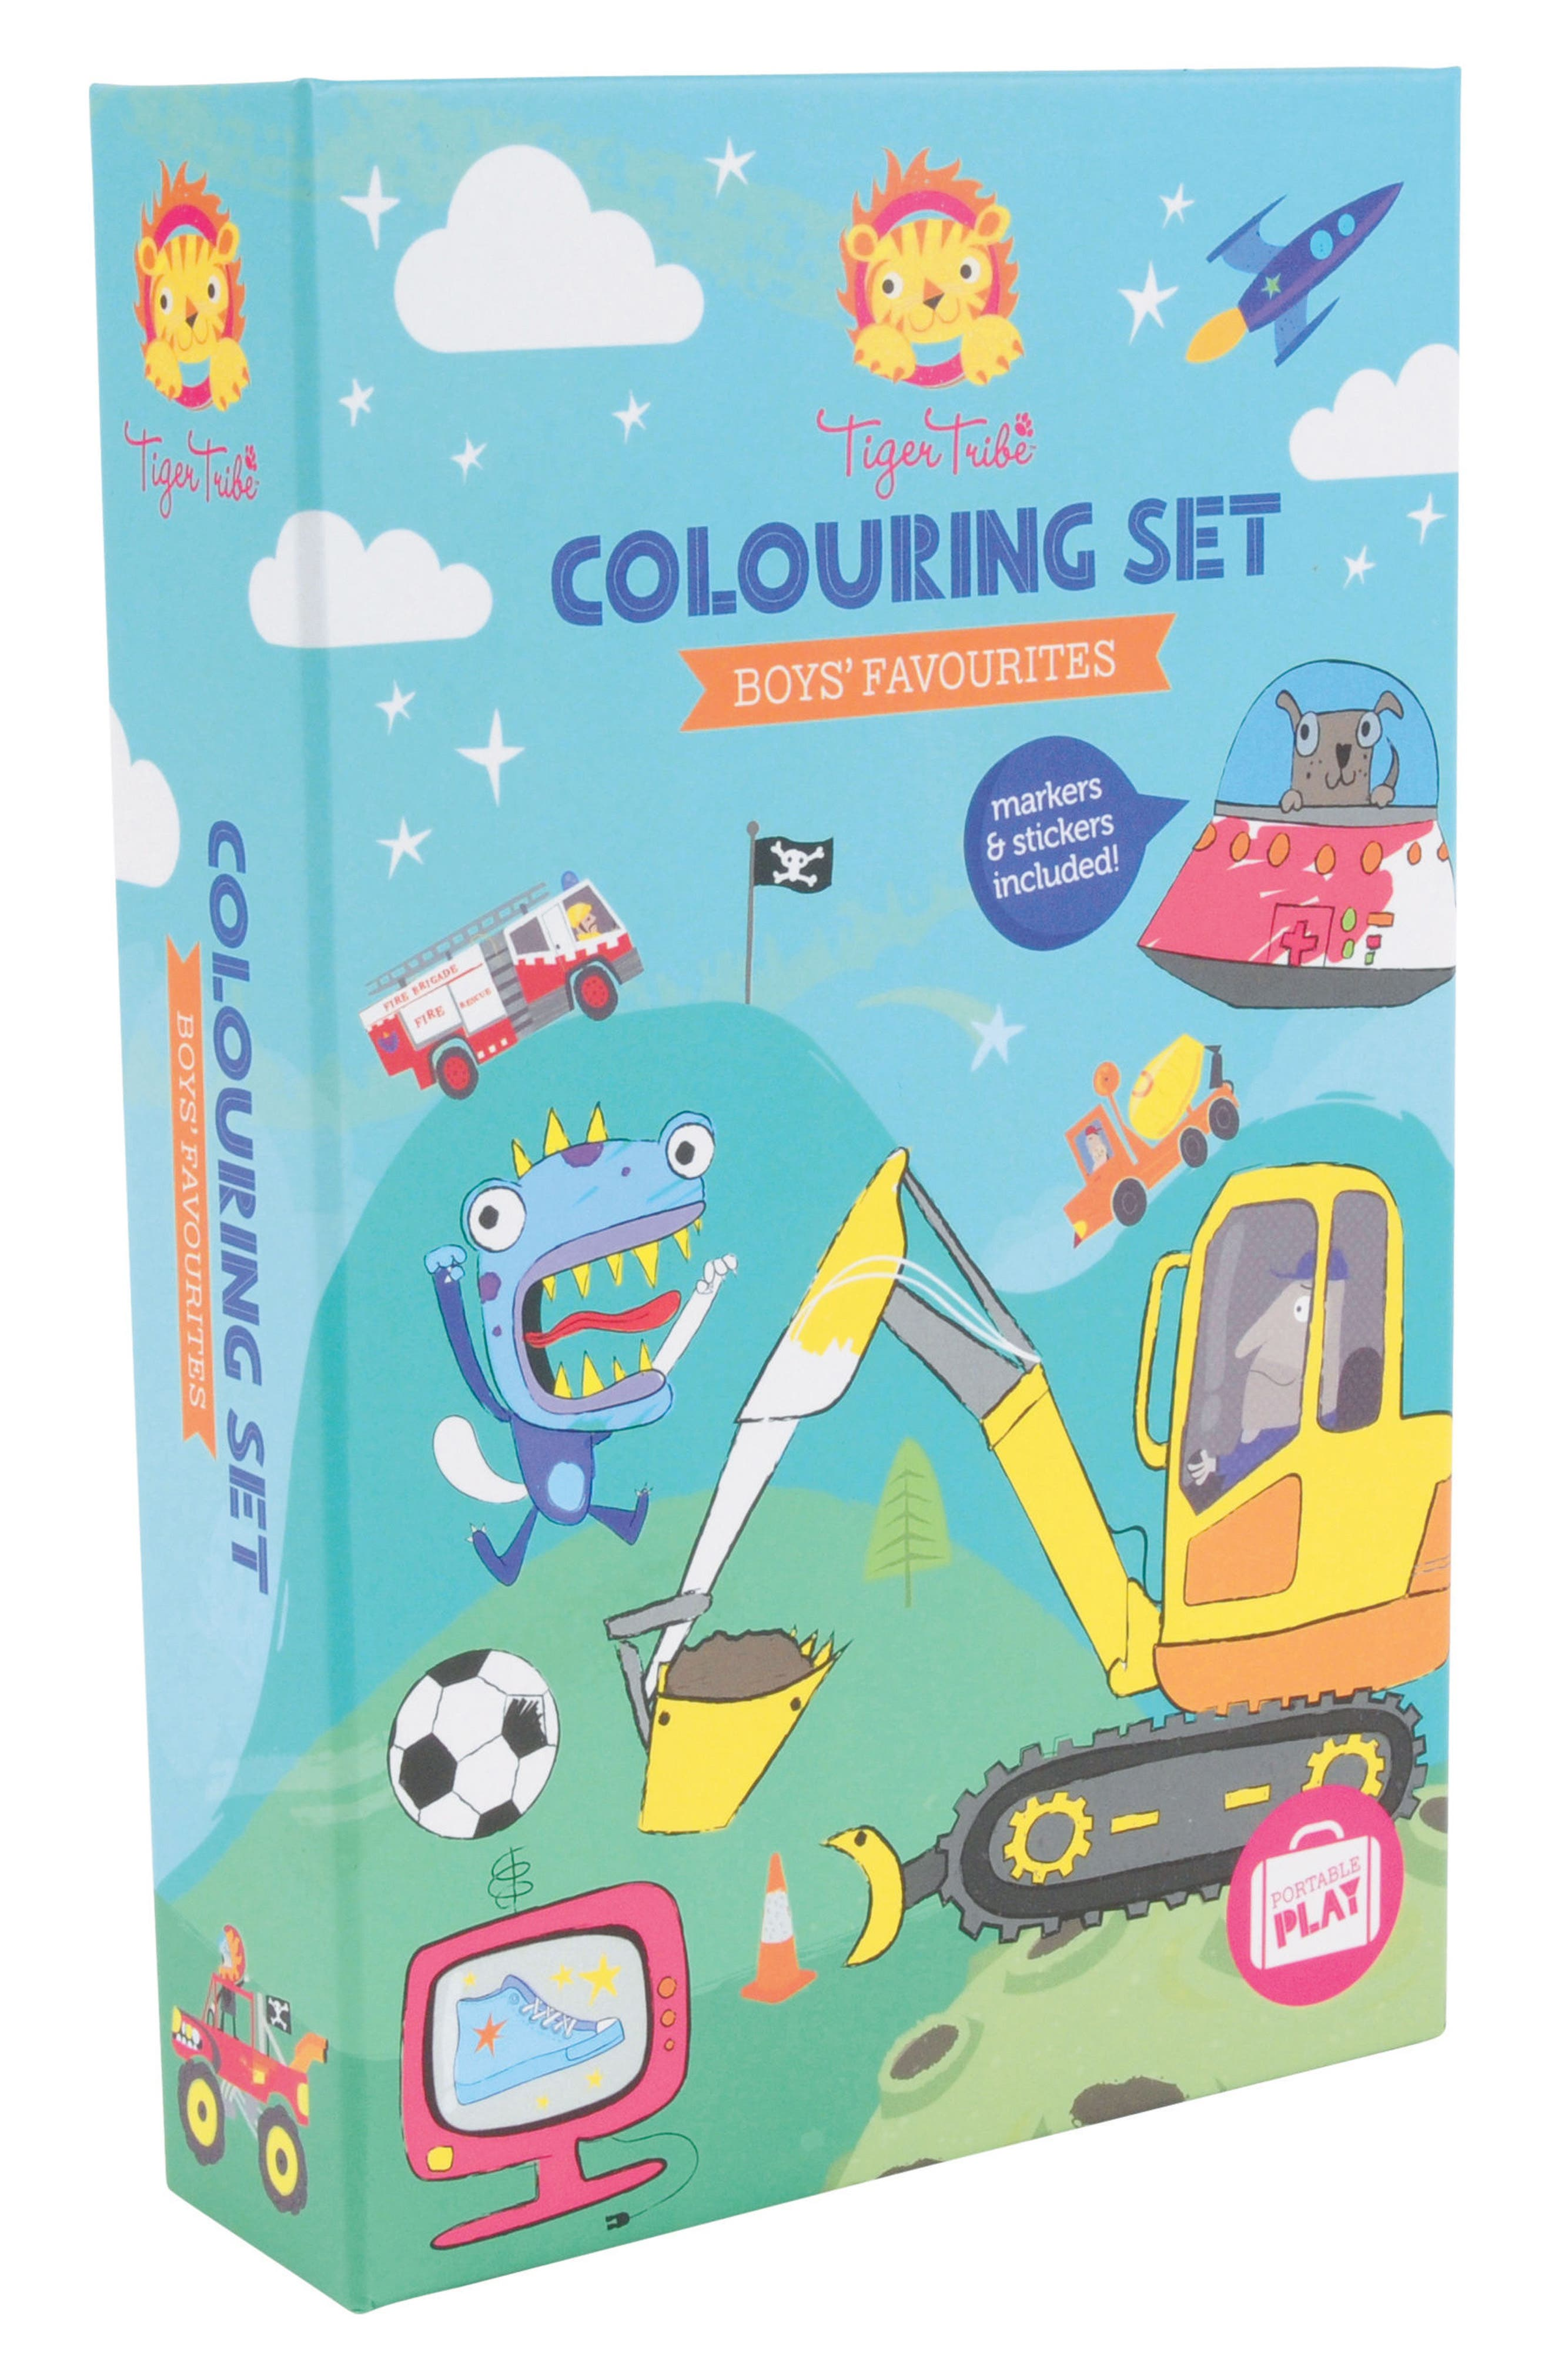 Tiger Tribe Boys' Favorites Coloring Set